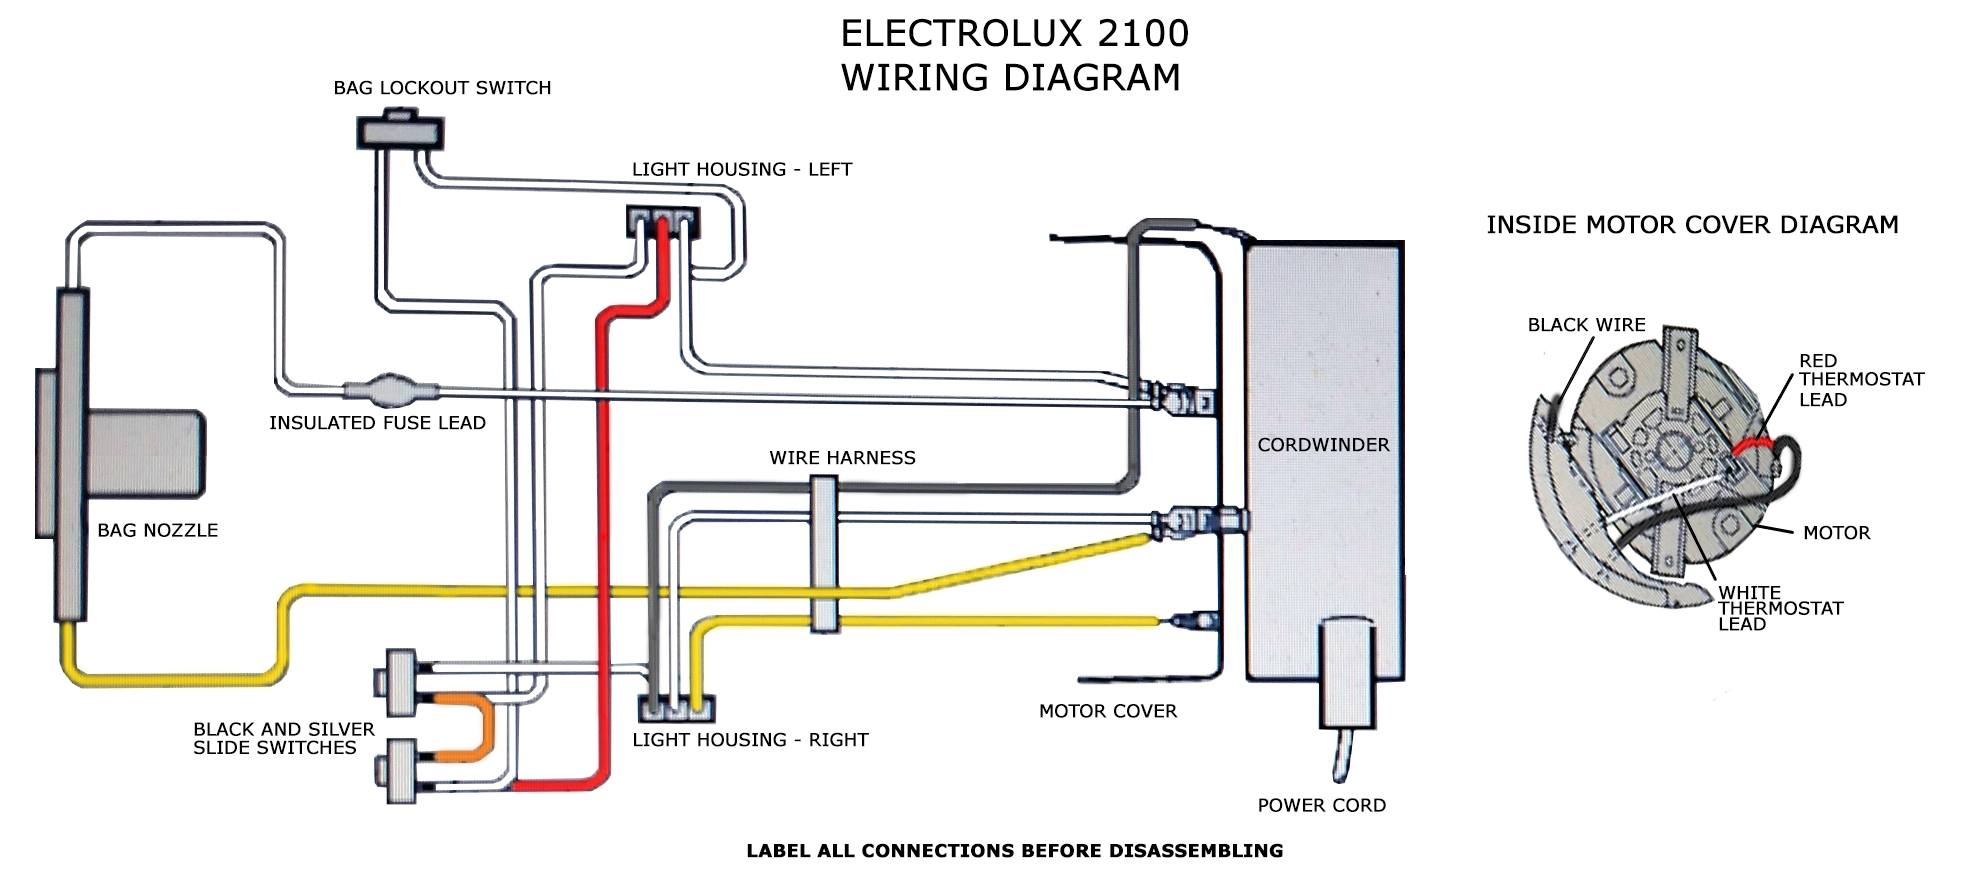 2100 wiring diagram electrolux 2100 wiring diagram vacuum cleaner motor wiring diagram at reclaimingppi.co